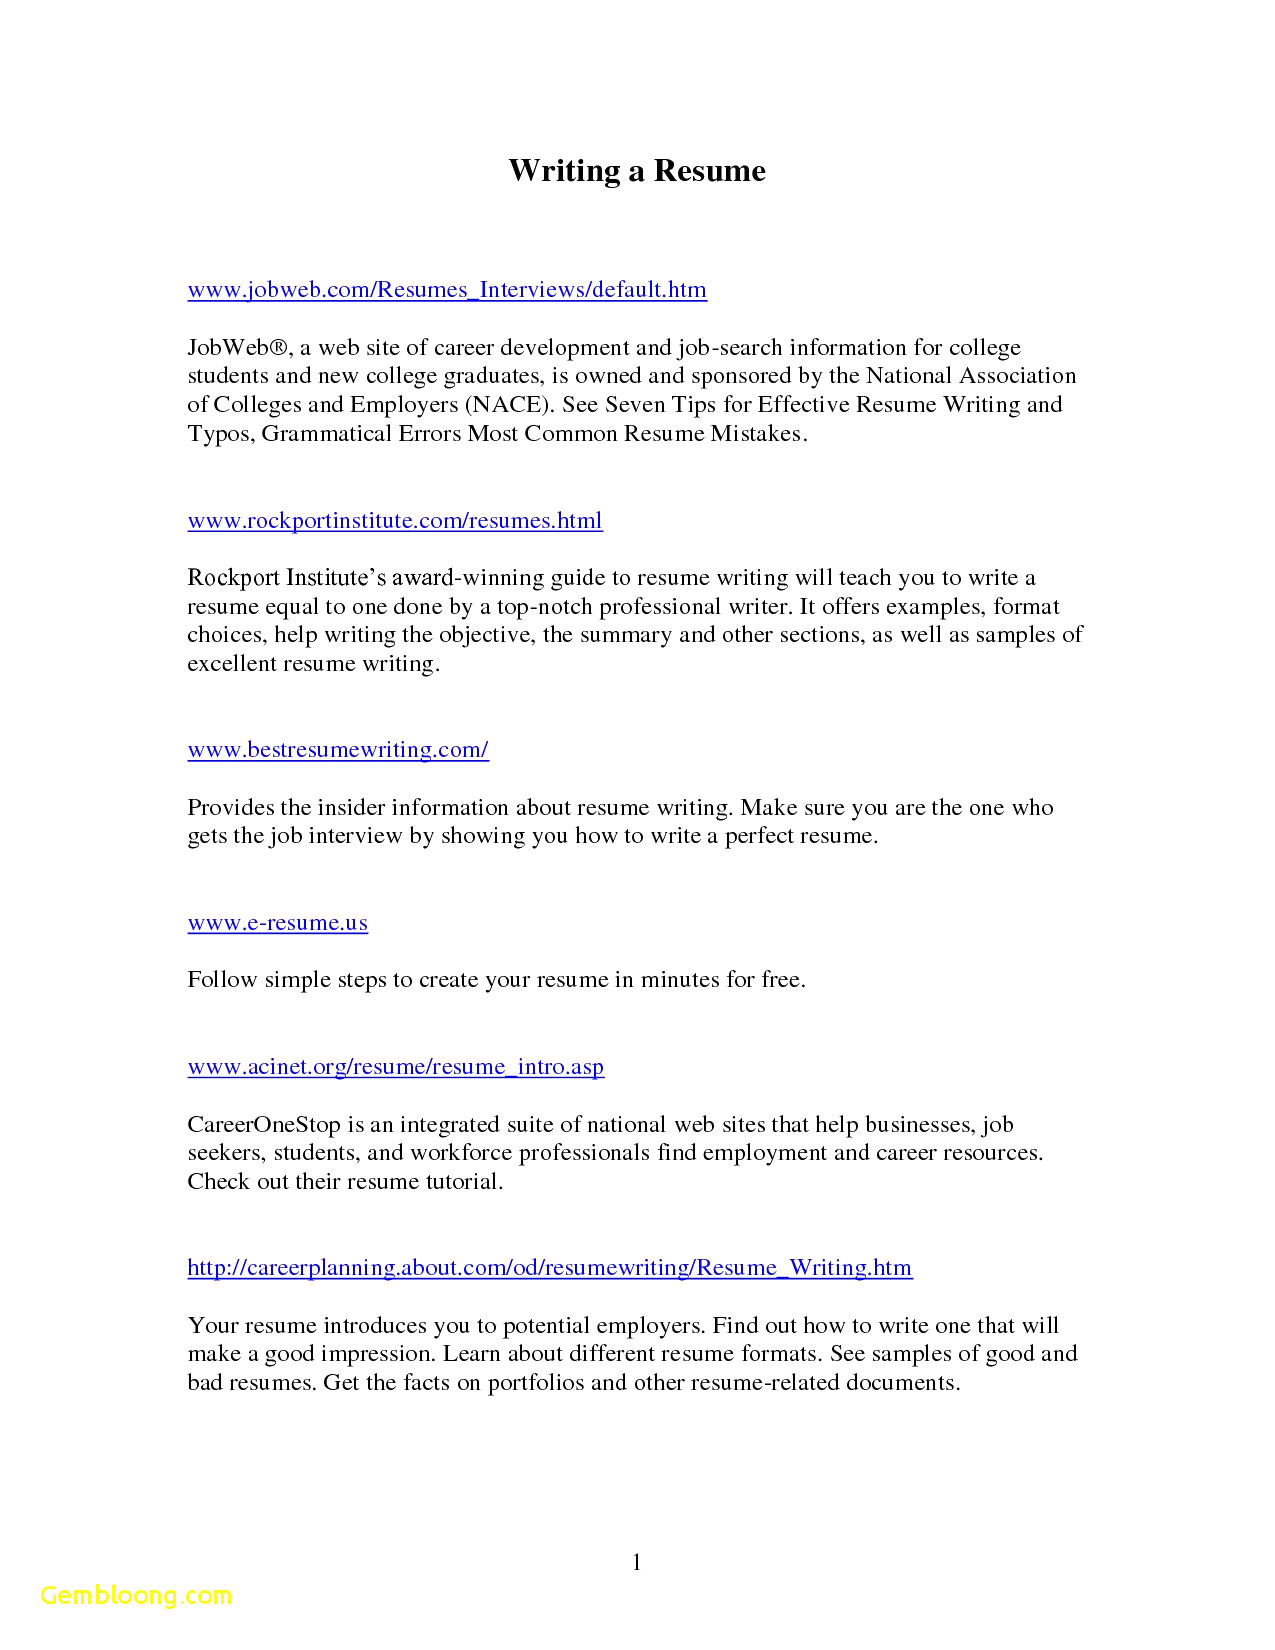 Human Resources Manager Resume - 61 New Human Resources Manager Resume